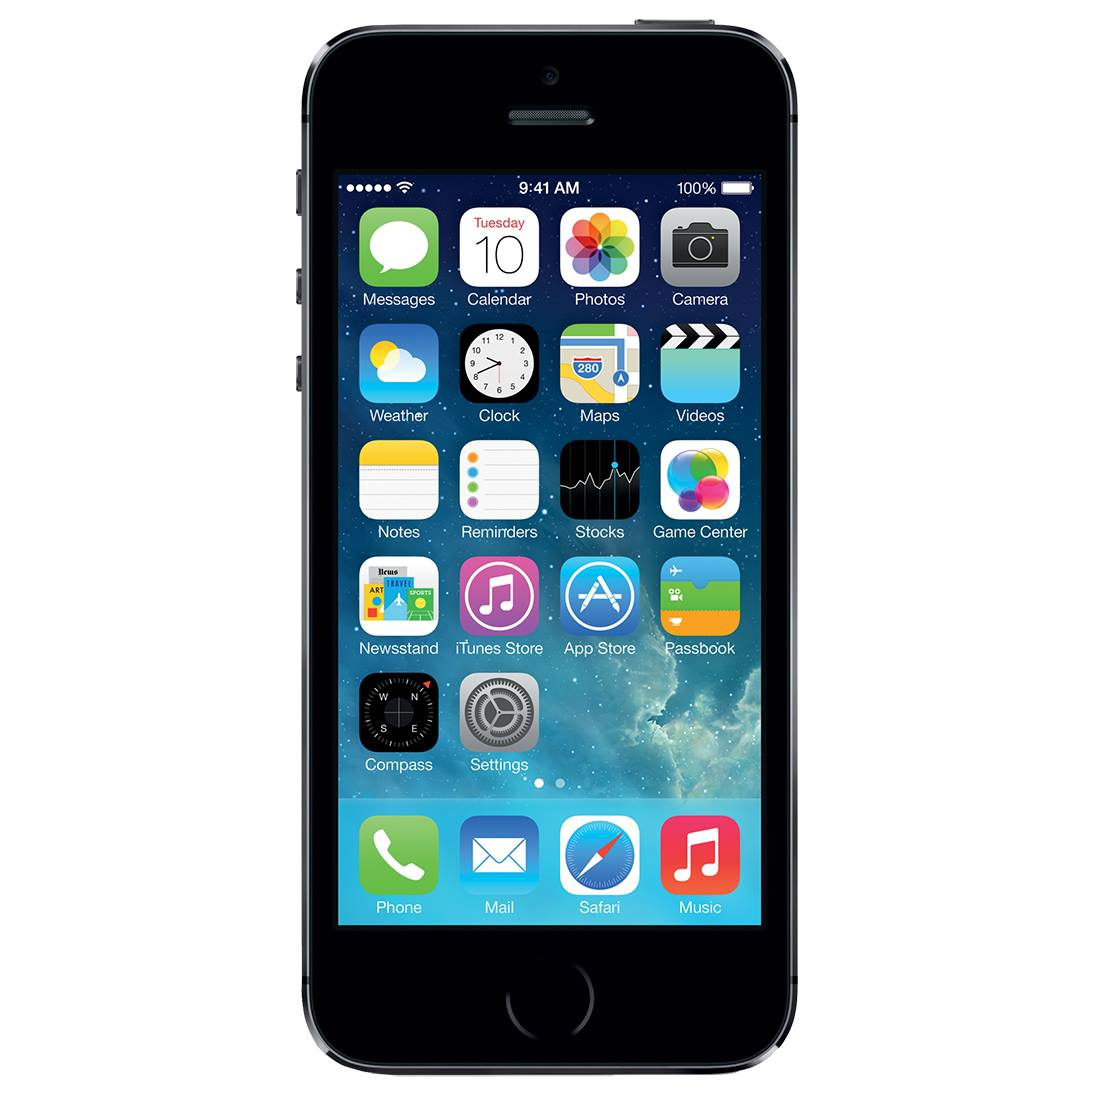 iphone 5s size apple iphone 5s screen specifications sizescreens 11249